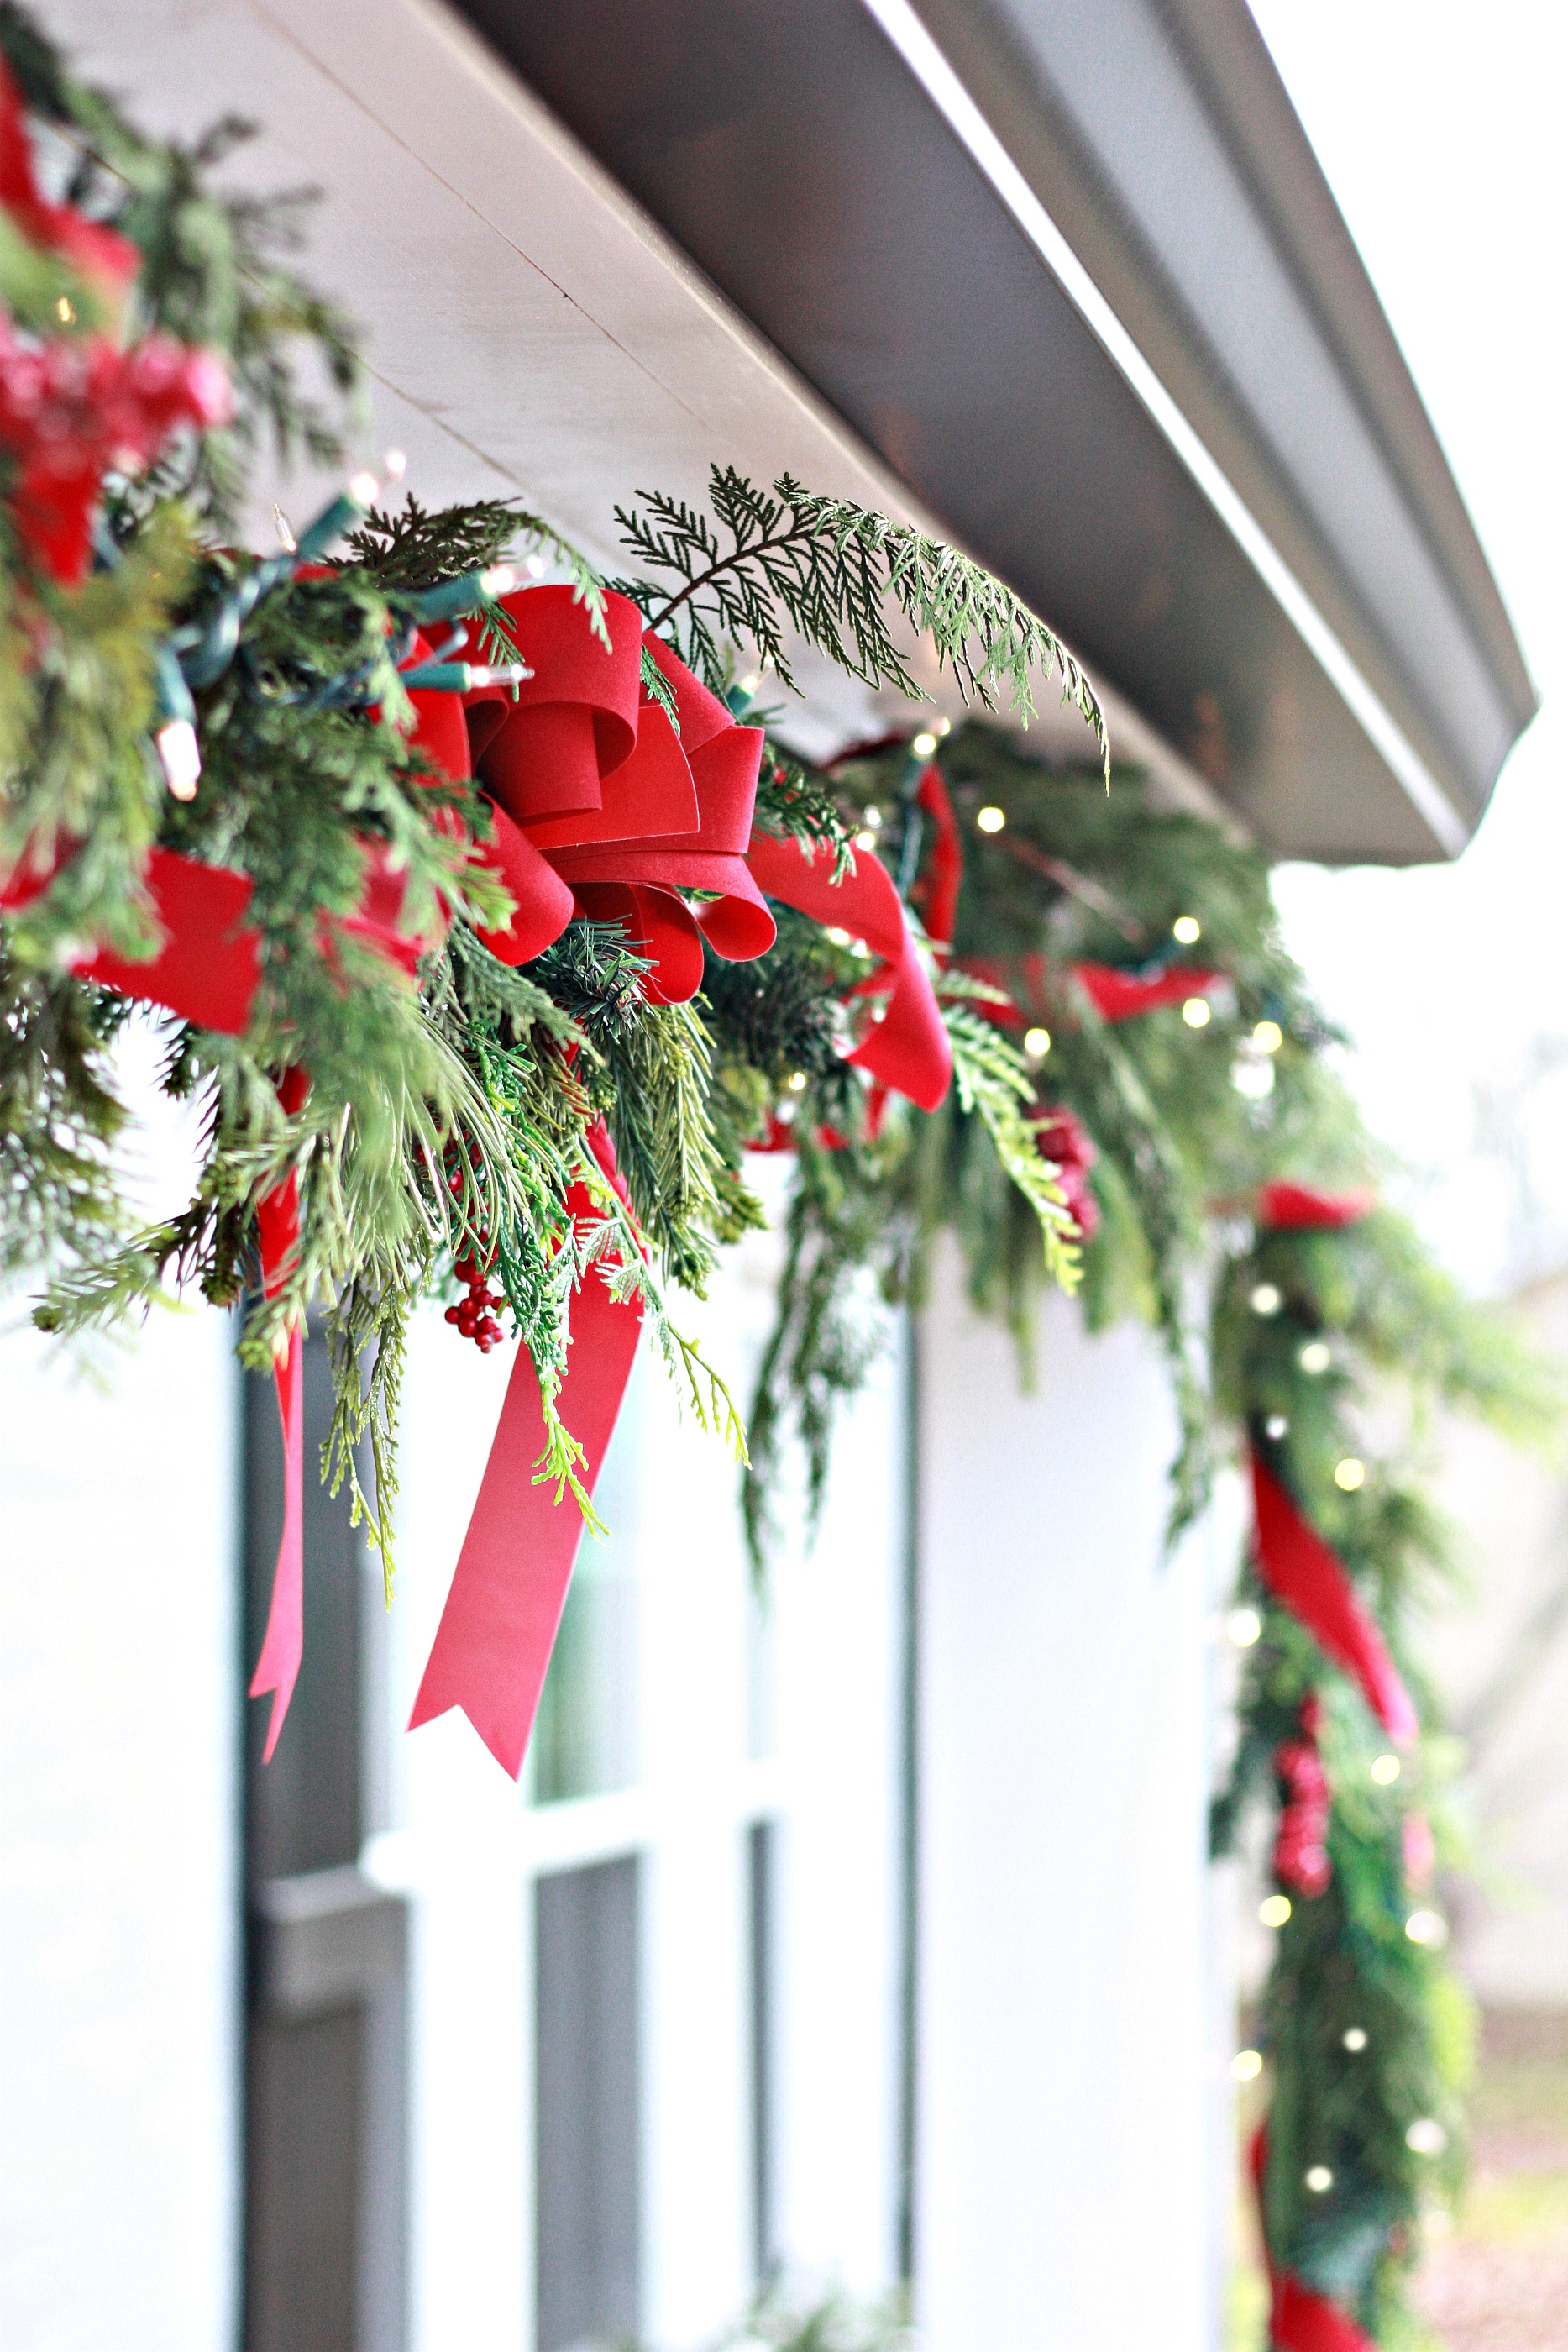 how to decorate christmas window boxes and outdoor garland - Window Box Decorations Christmas Outdoor